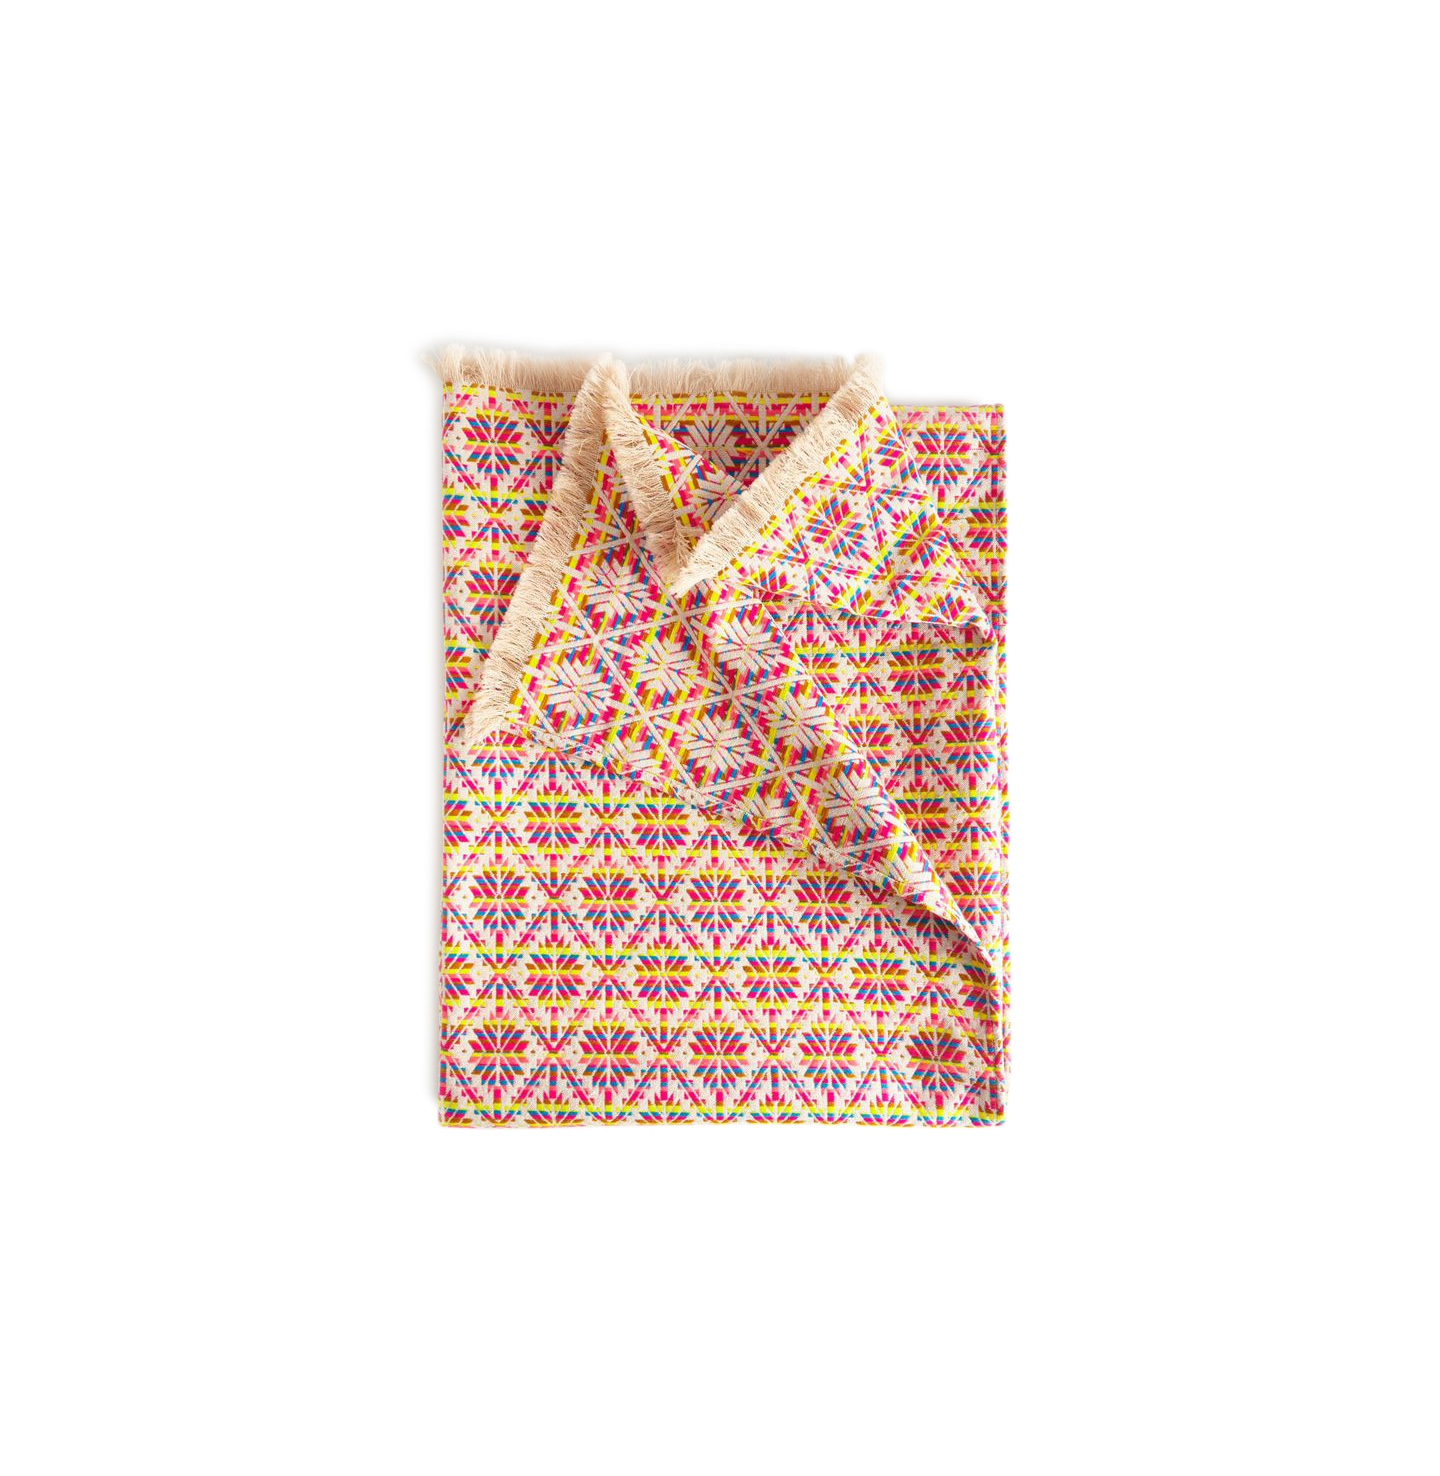 Creatively Connected Picnic Blanket in Geometric